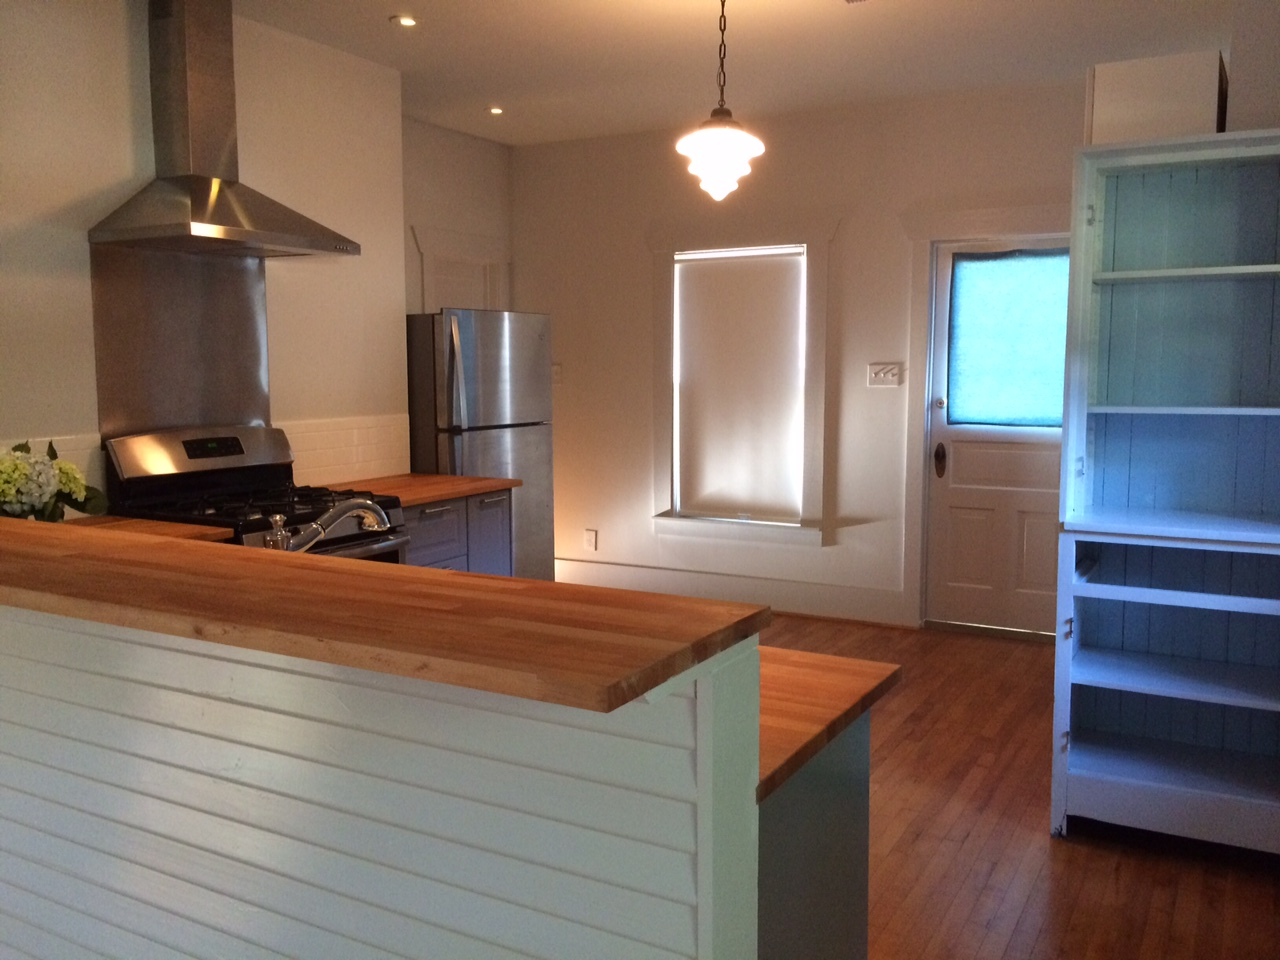 An Ikea Kitchen Renovation Saves This 1920s Bungalow Home From Dr Frankenstein